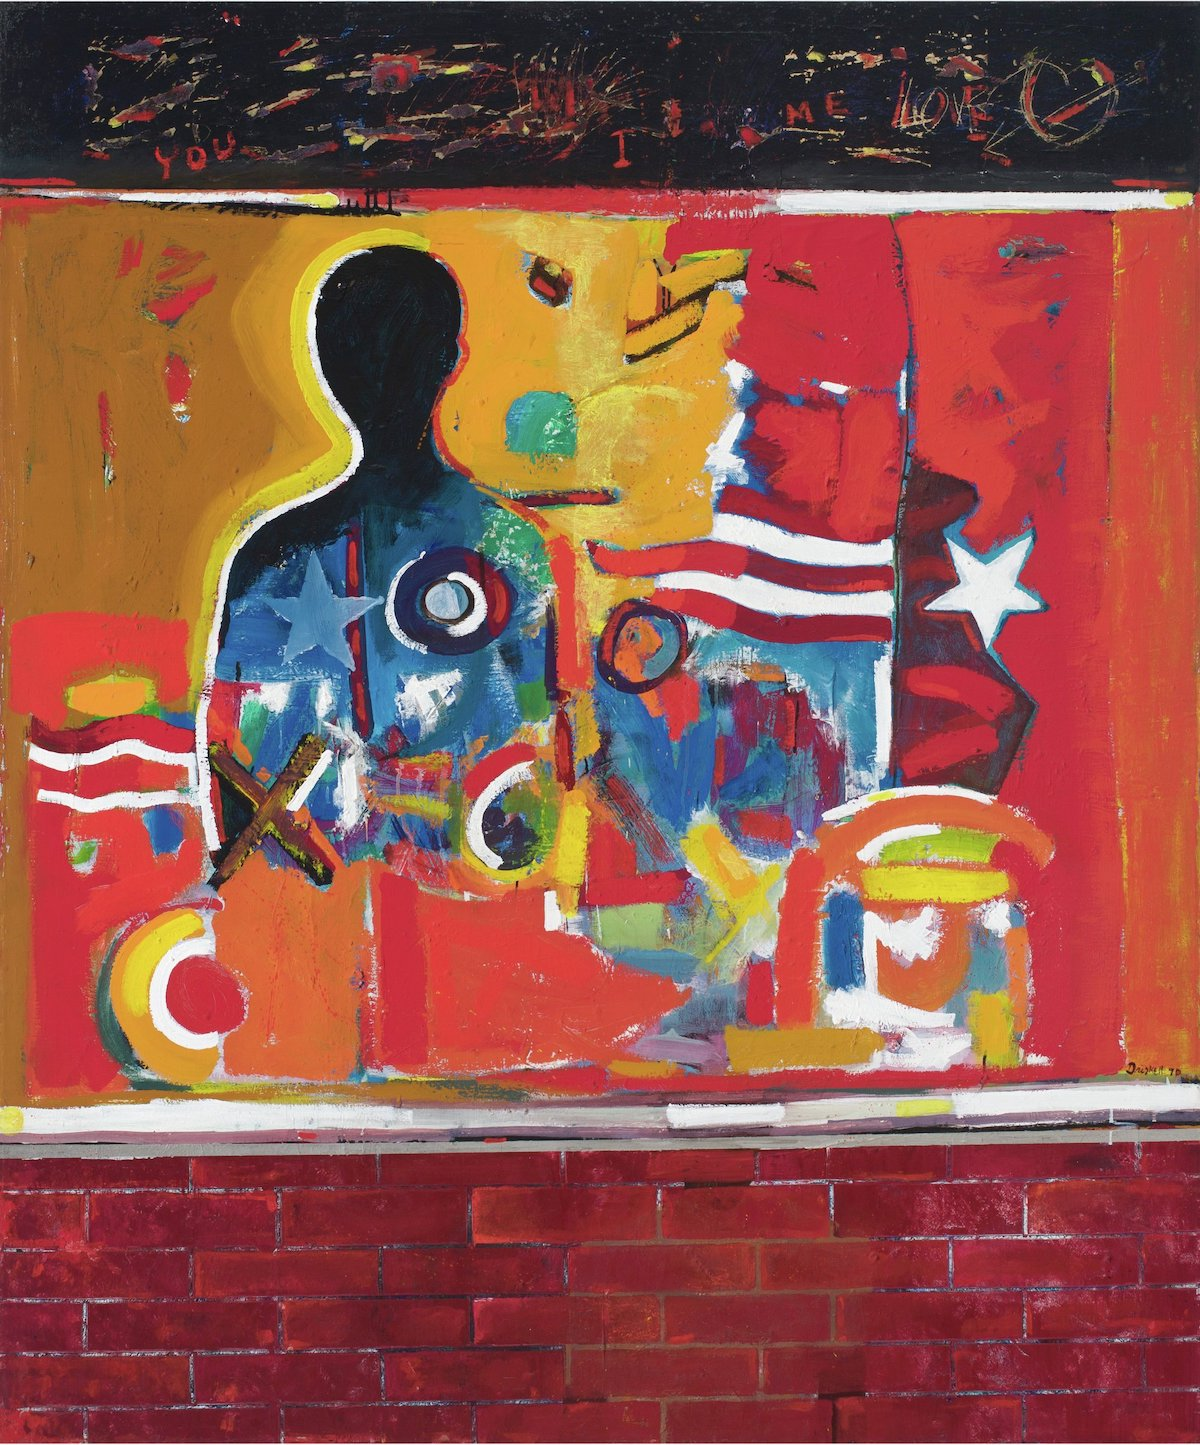 David C. Driskell, 'Ghetto Wall #2', 1970. A black figure stands behind a mass of abstract forms, with a brick wall covering the lower part of its body.